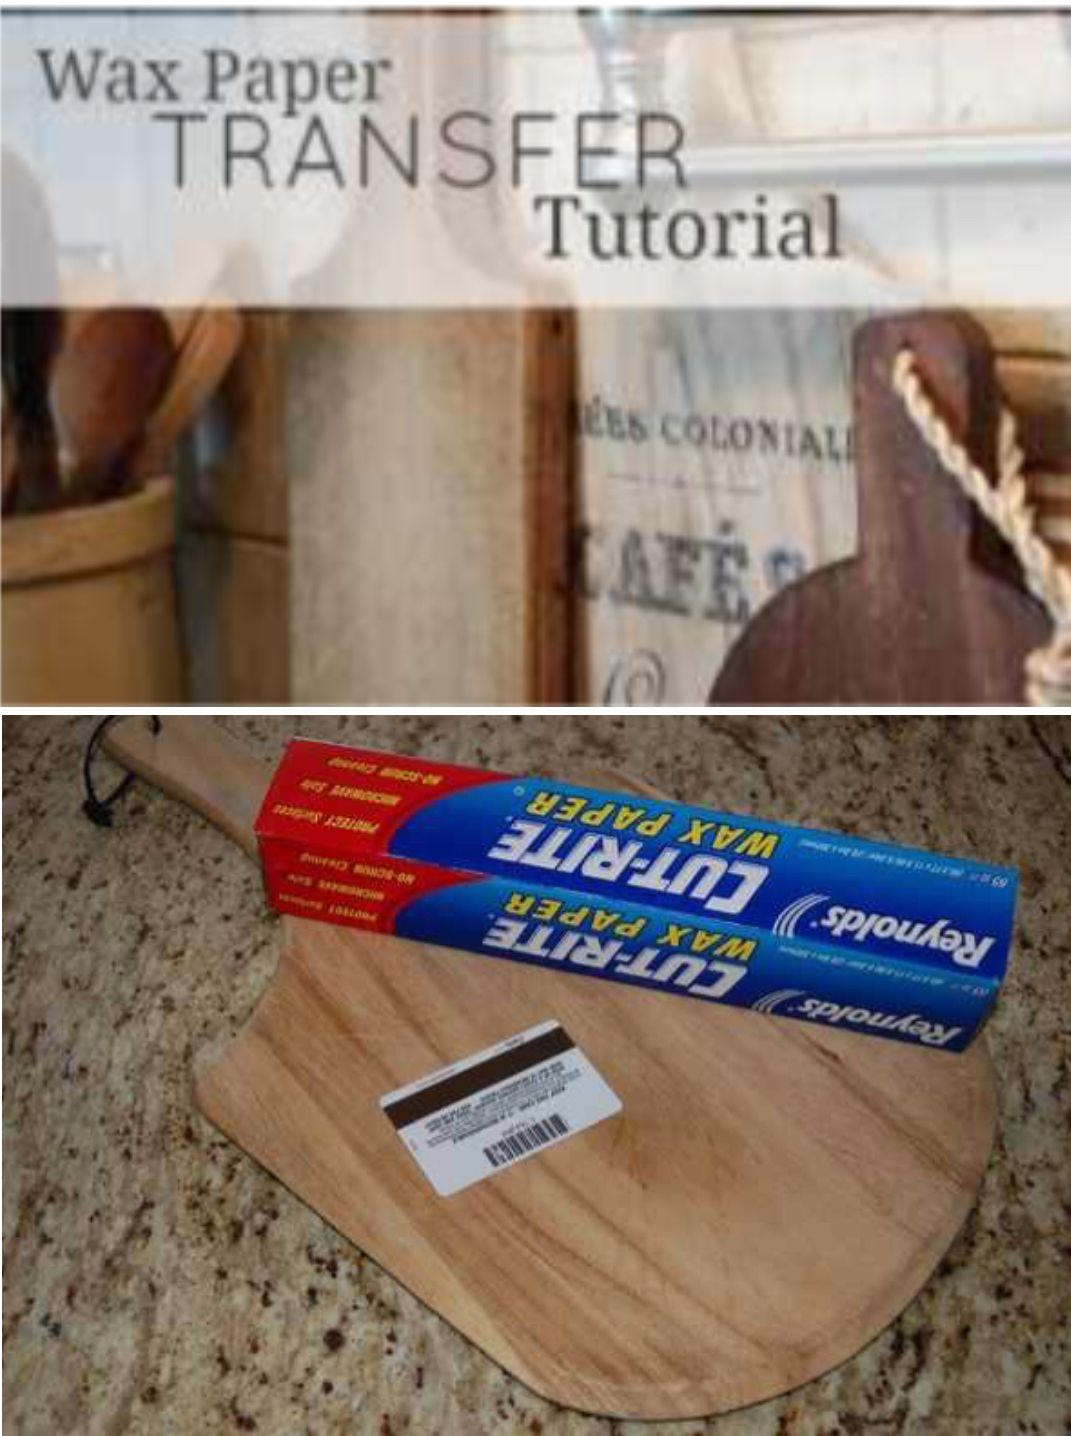 Transfer Images Using Wax Paper Tutorial Craft Ideas Wax Paper